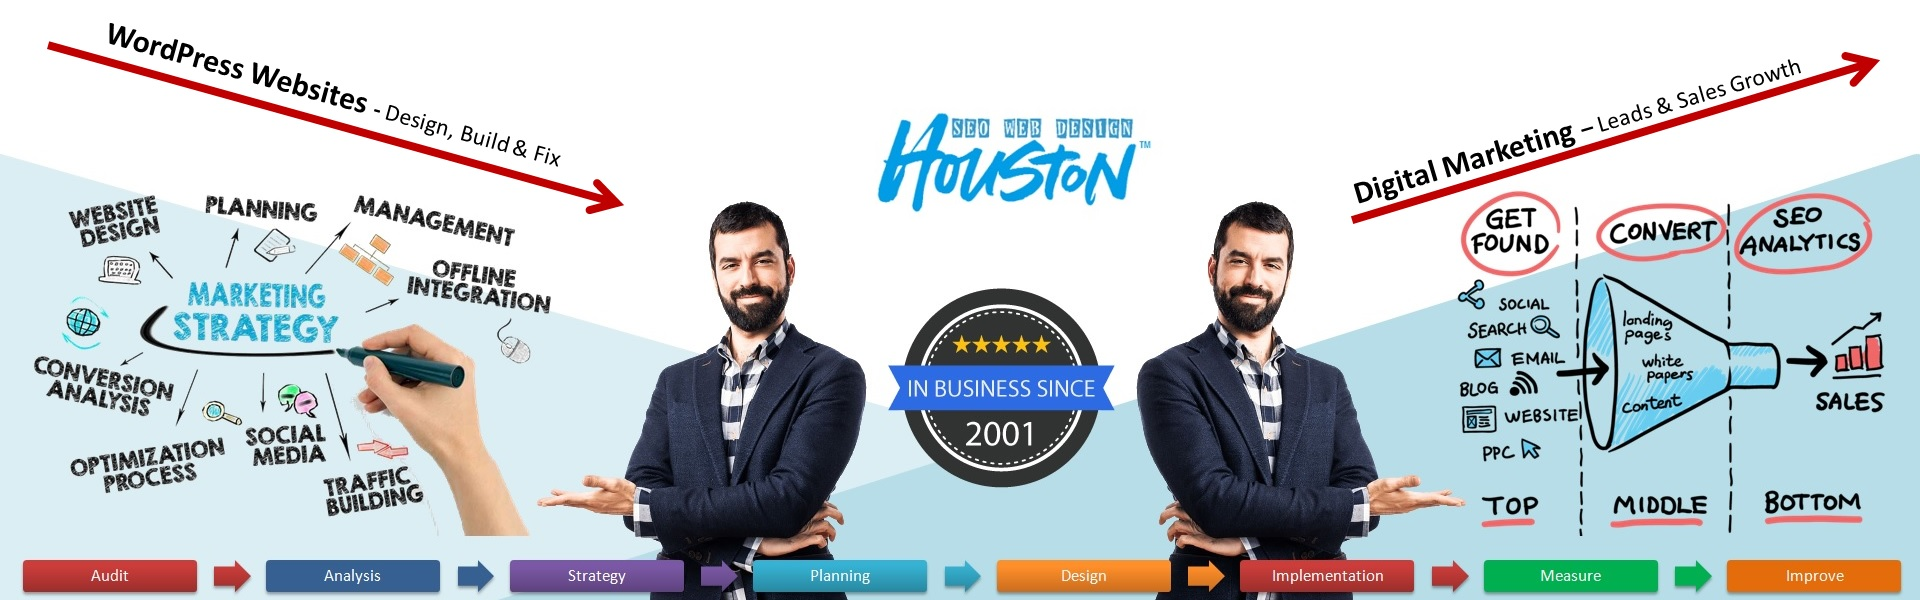 Houston-Digital-Marketing-Website-Design-Service-and-SEO-Services